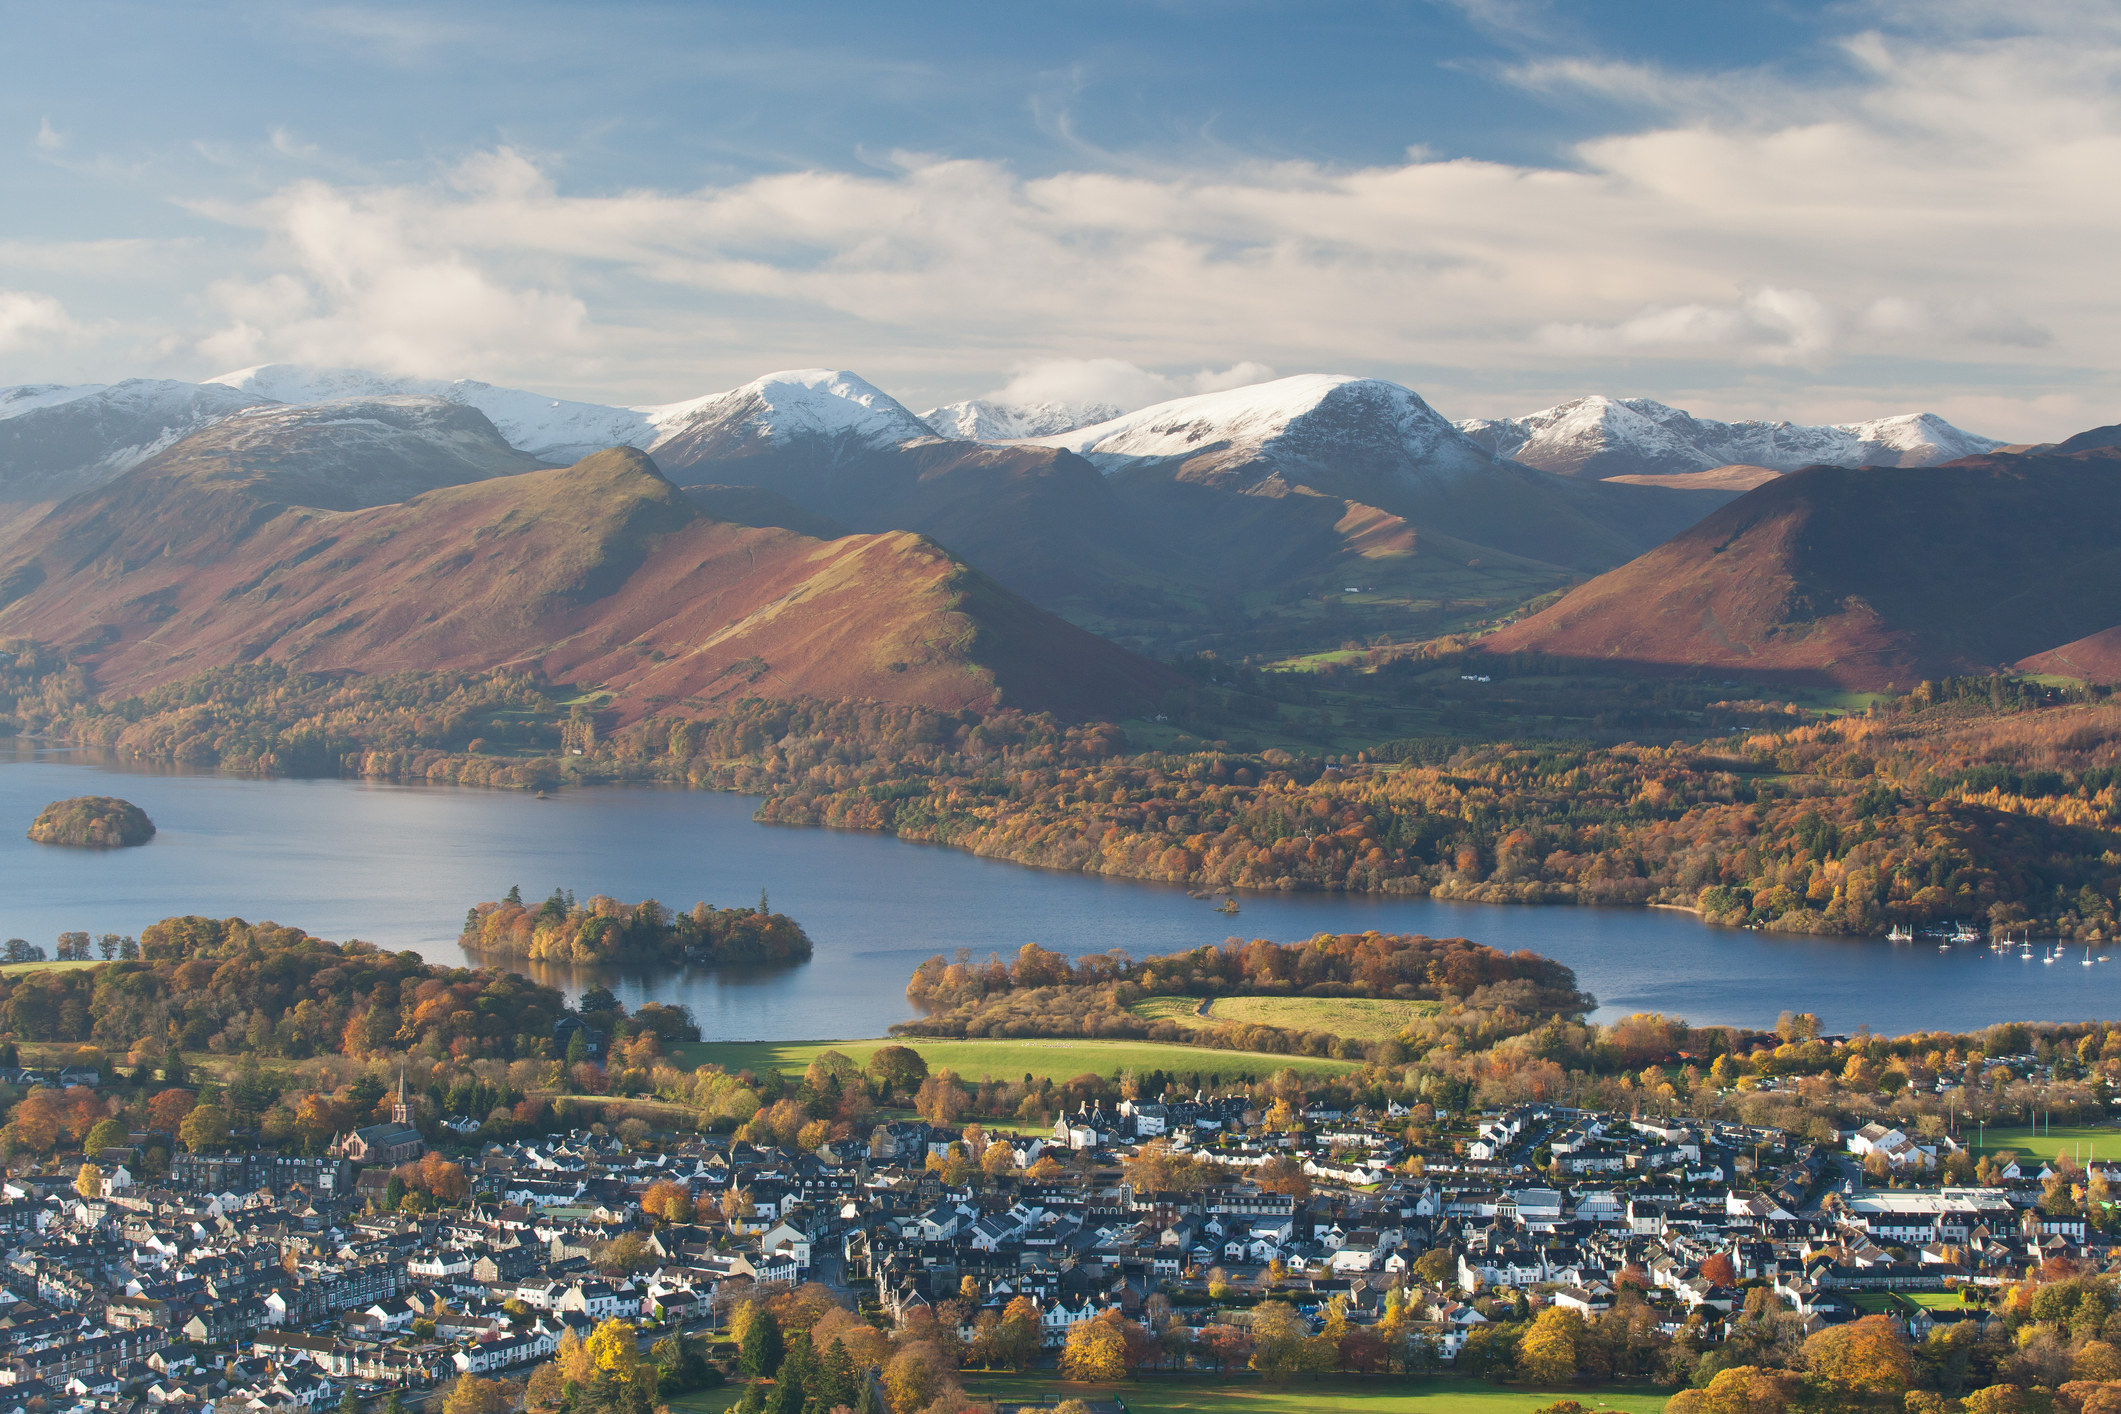 A view across the town of Keswick from above with the snow-capped mountains in the background